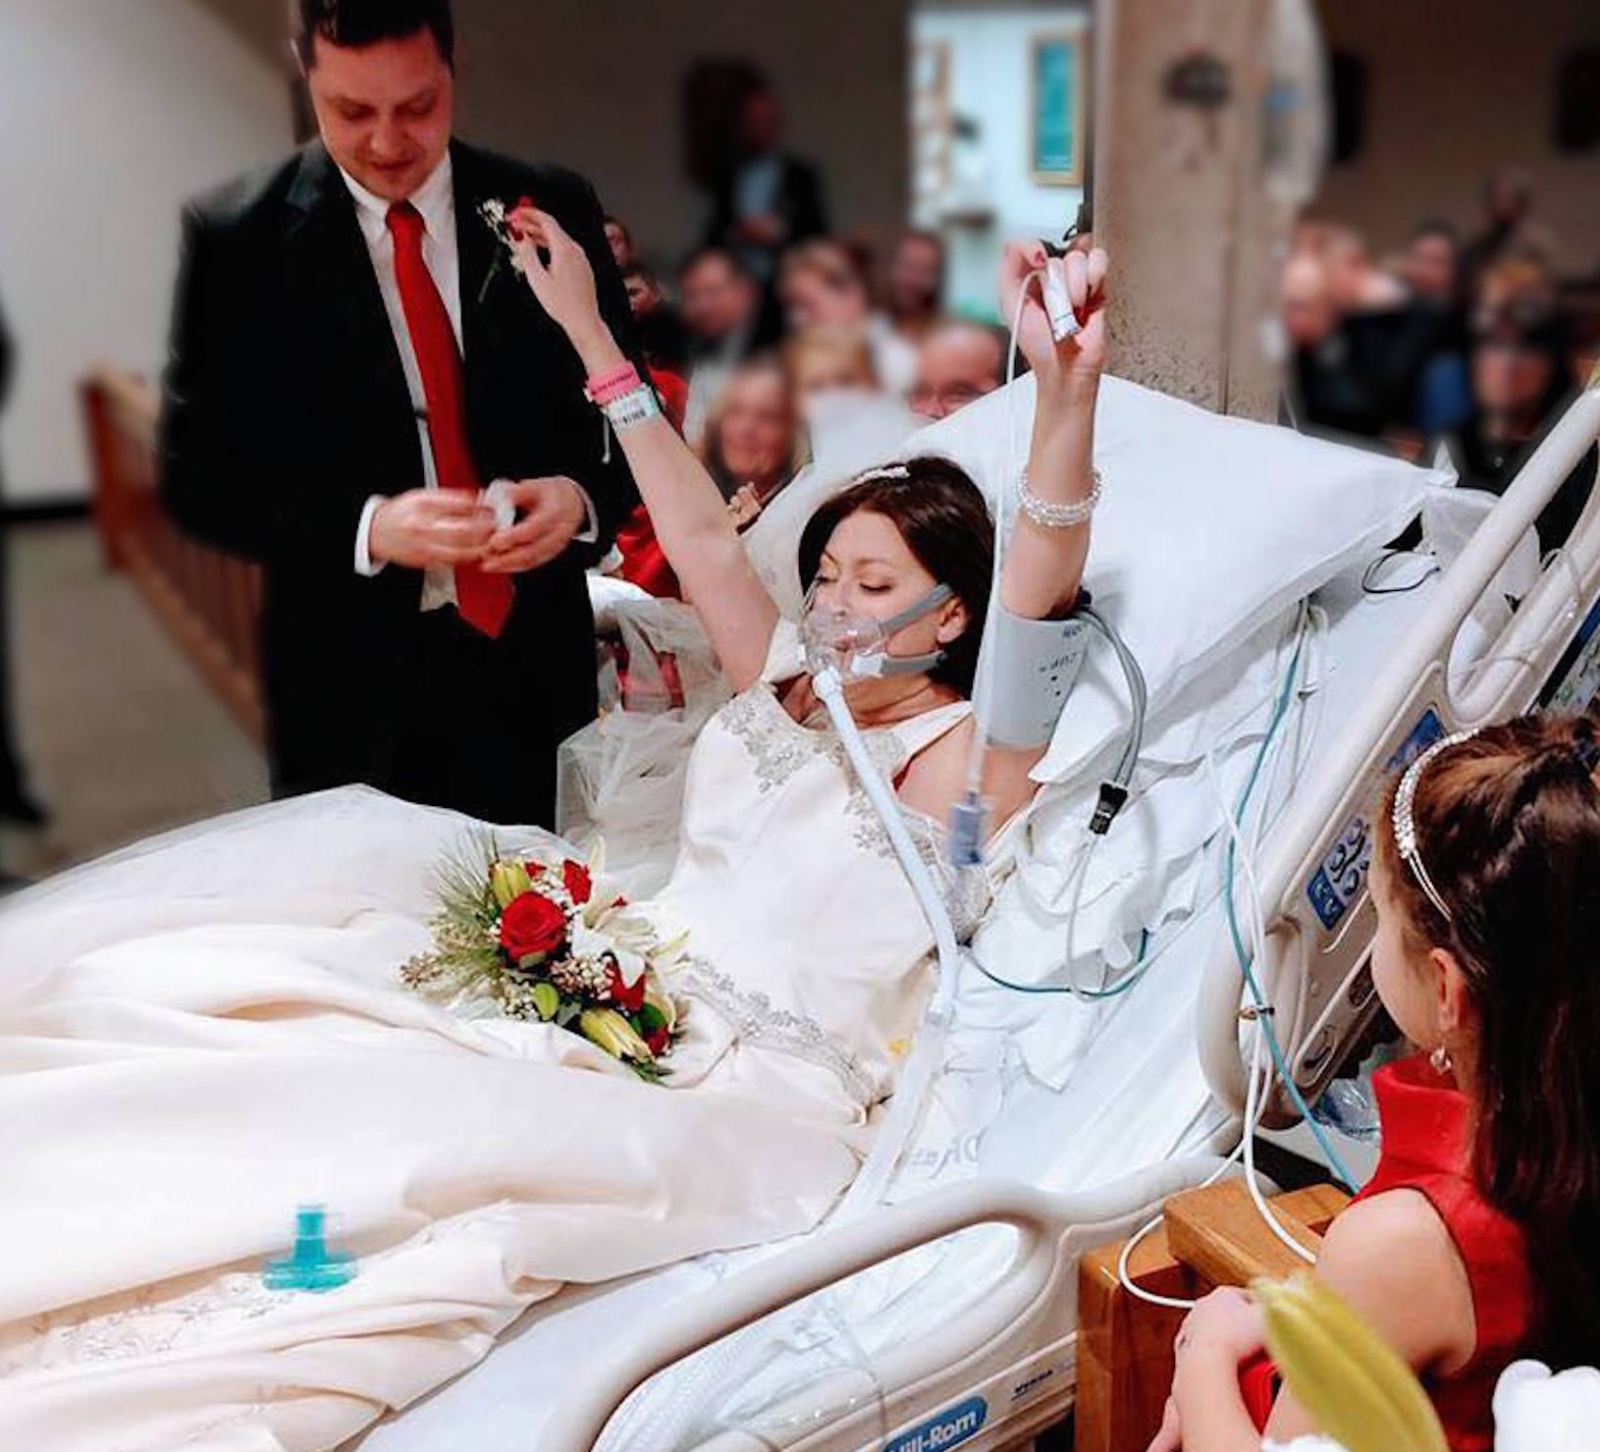 The Emotional Moment A Bride Suffering From Cancer Is